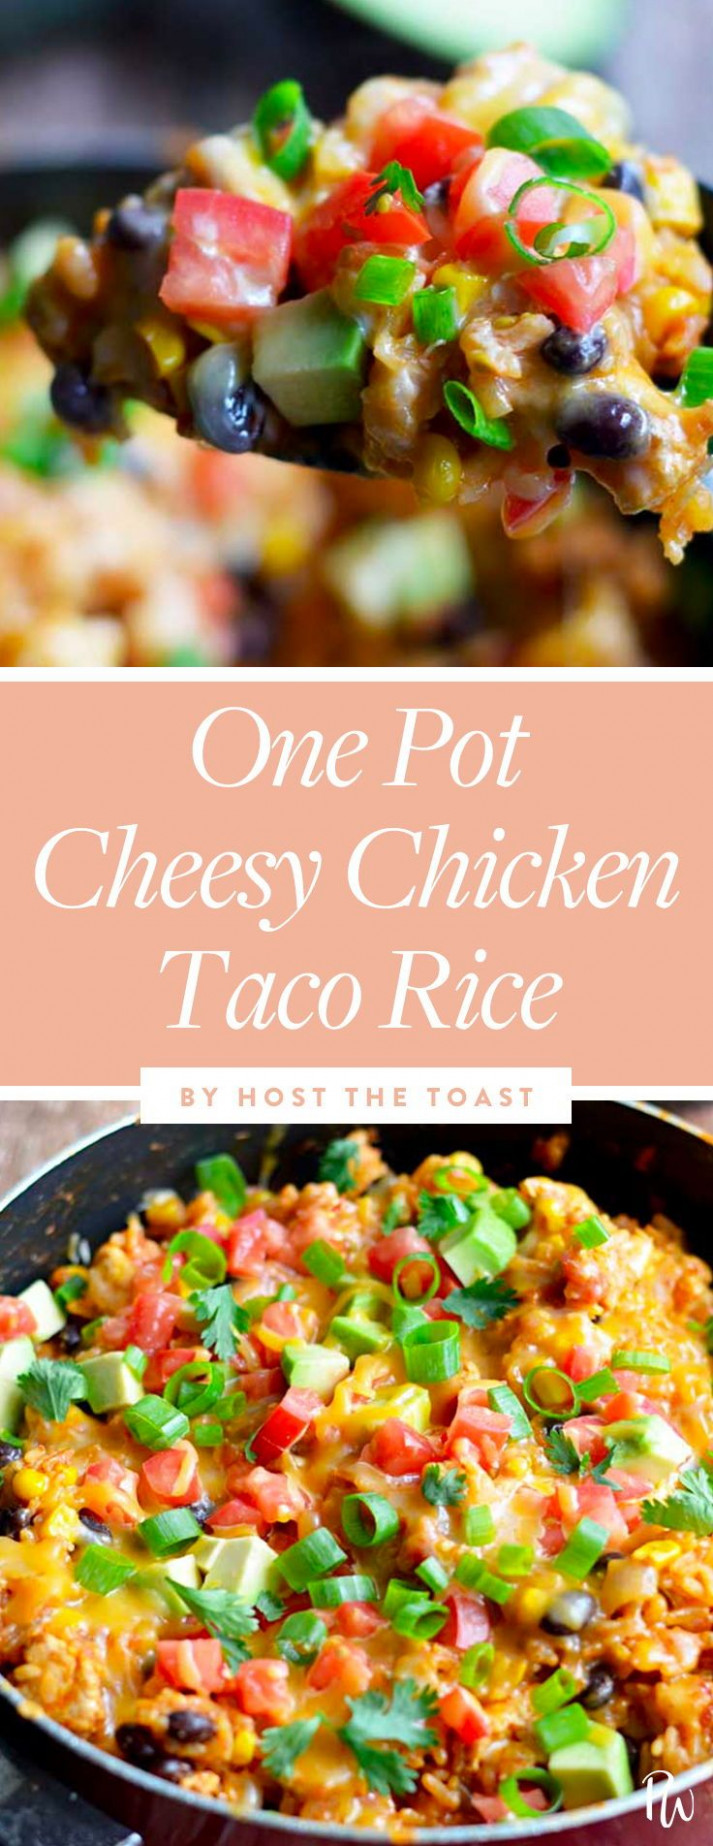 19 Quick And Easy Ground Chicken Recipes | EASY Dinner ..